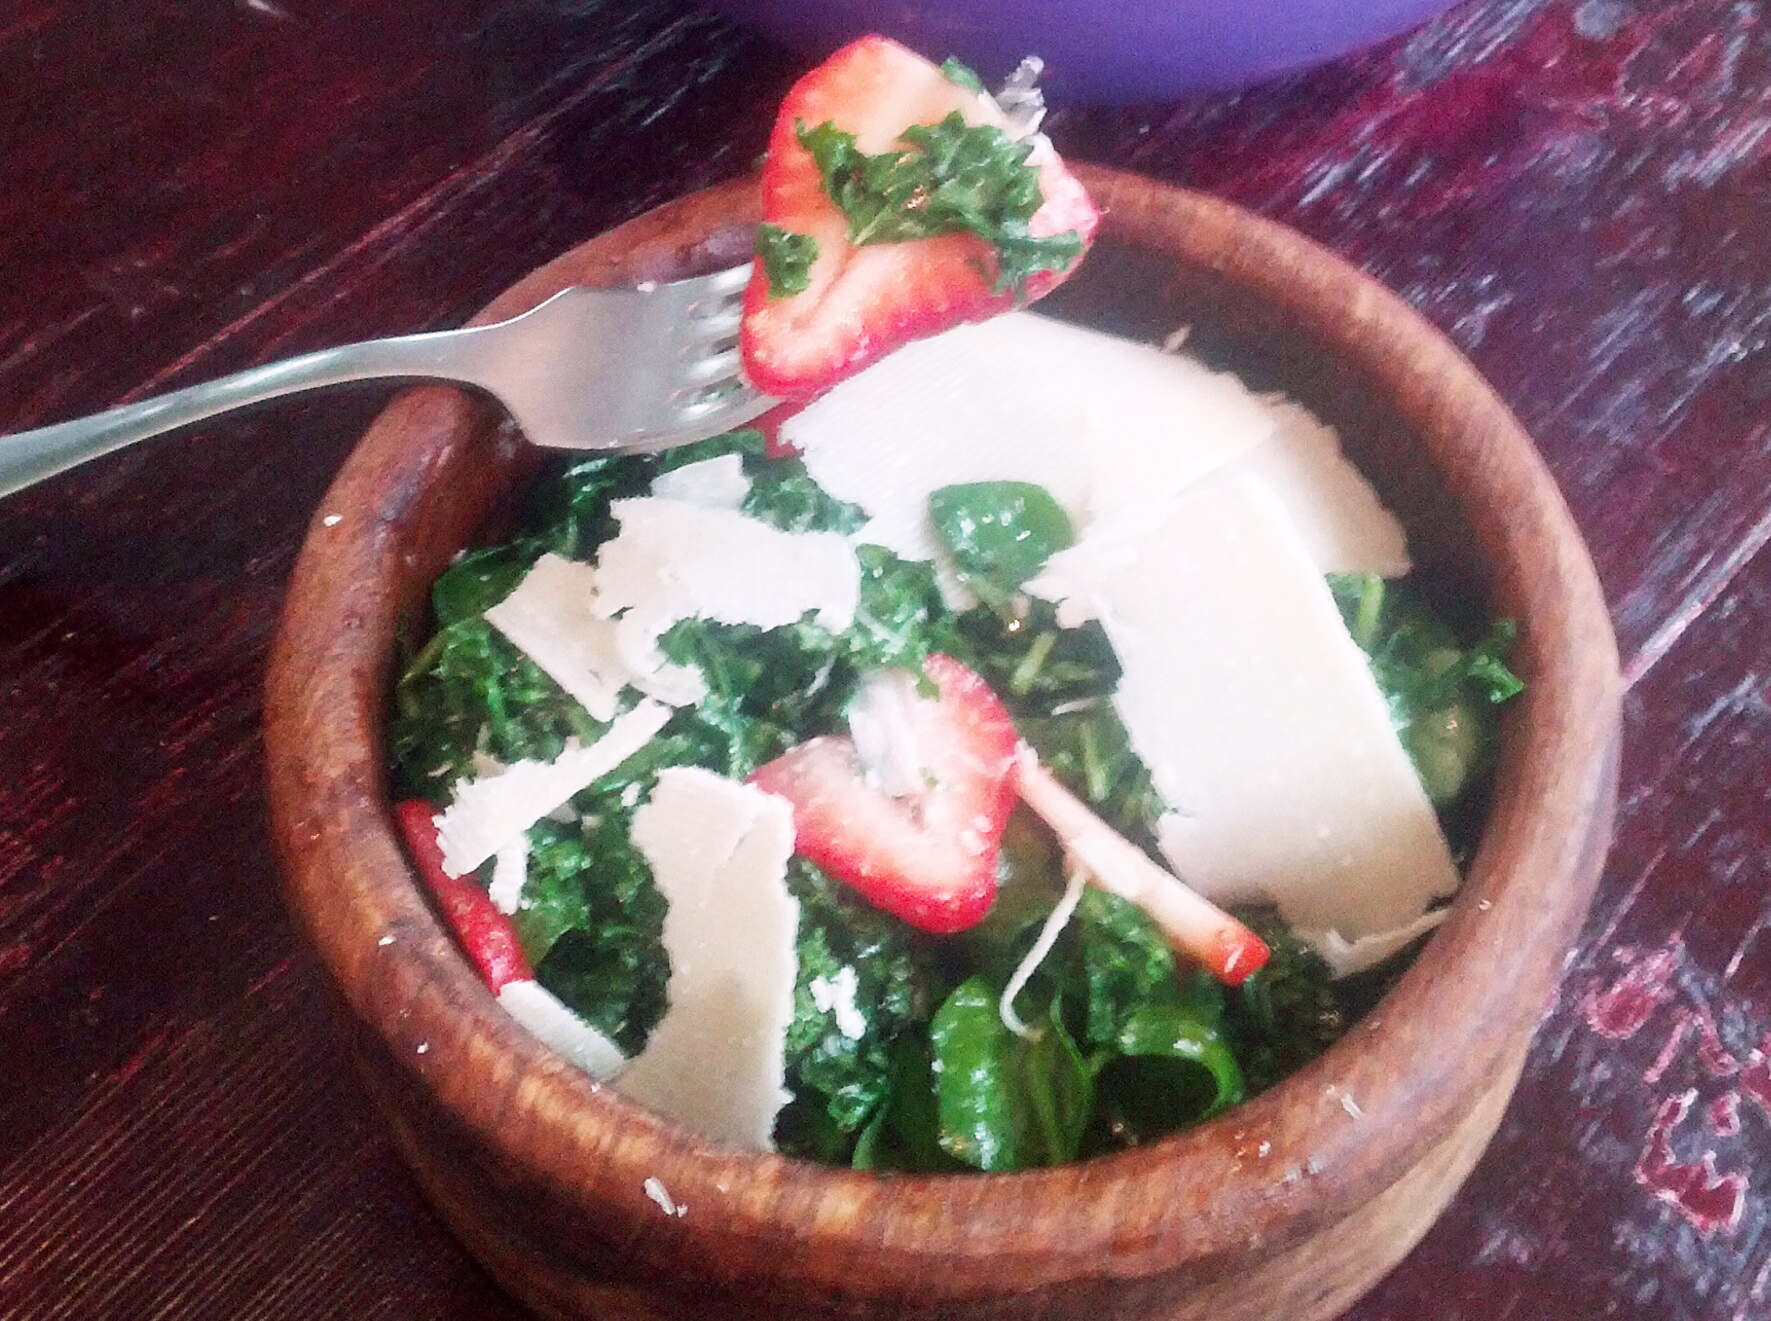 Strawberry Kale and Broccoli Rabe Salad